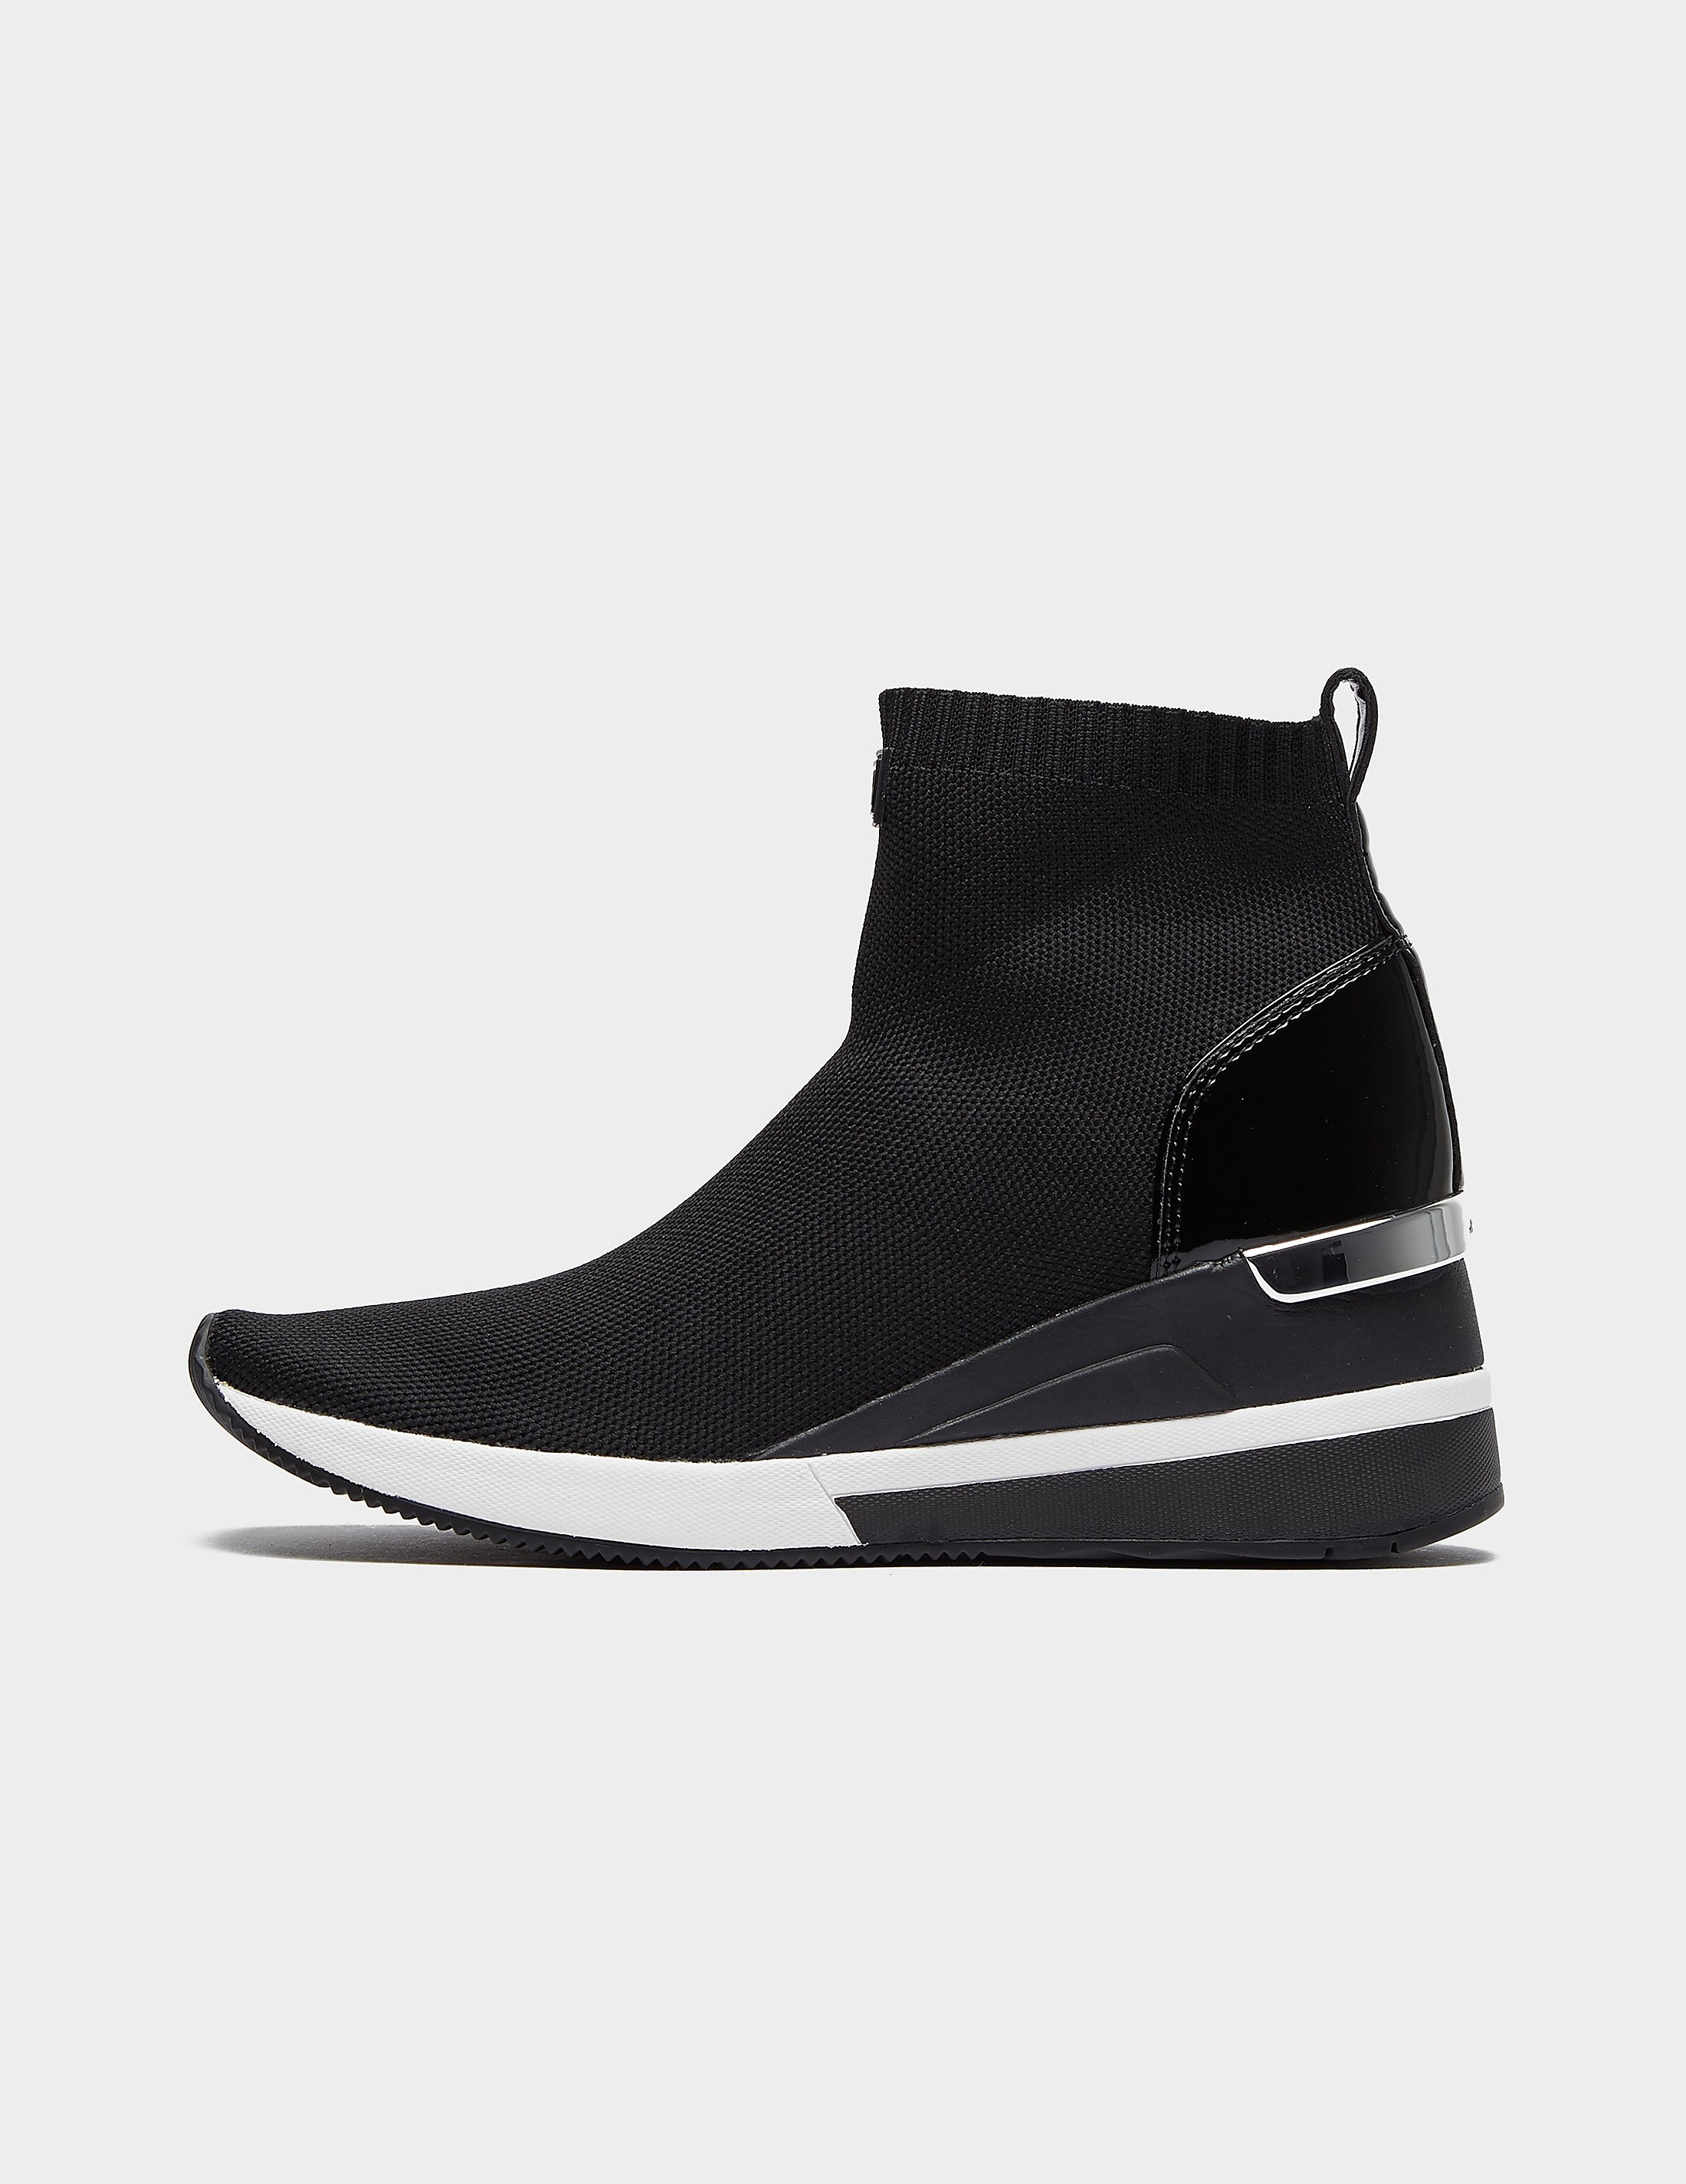 Michael Kors Skyler Sock Trainer